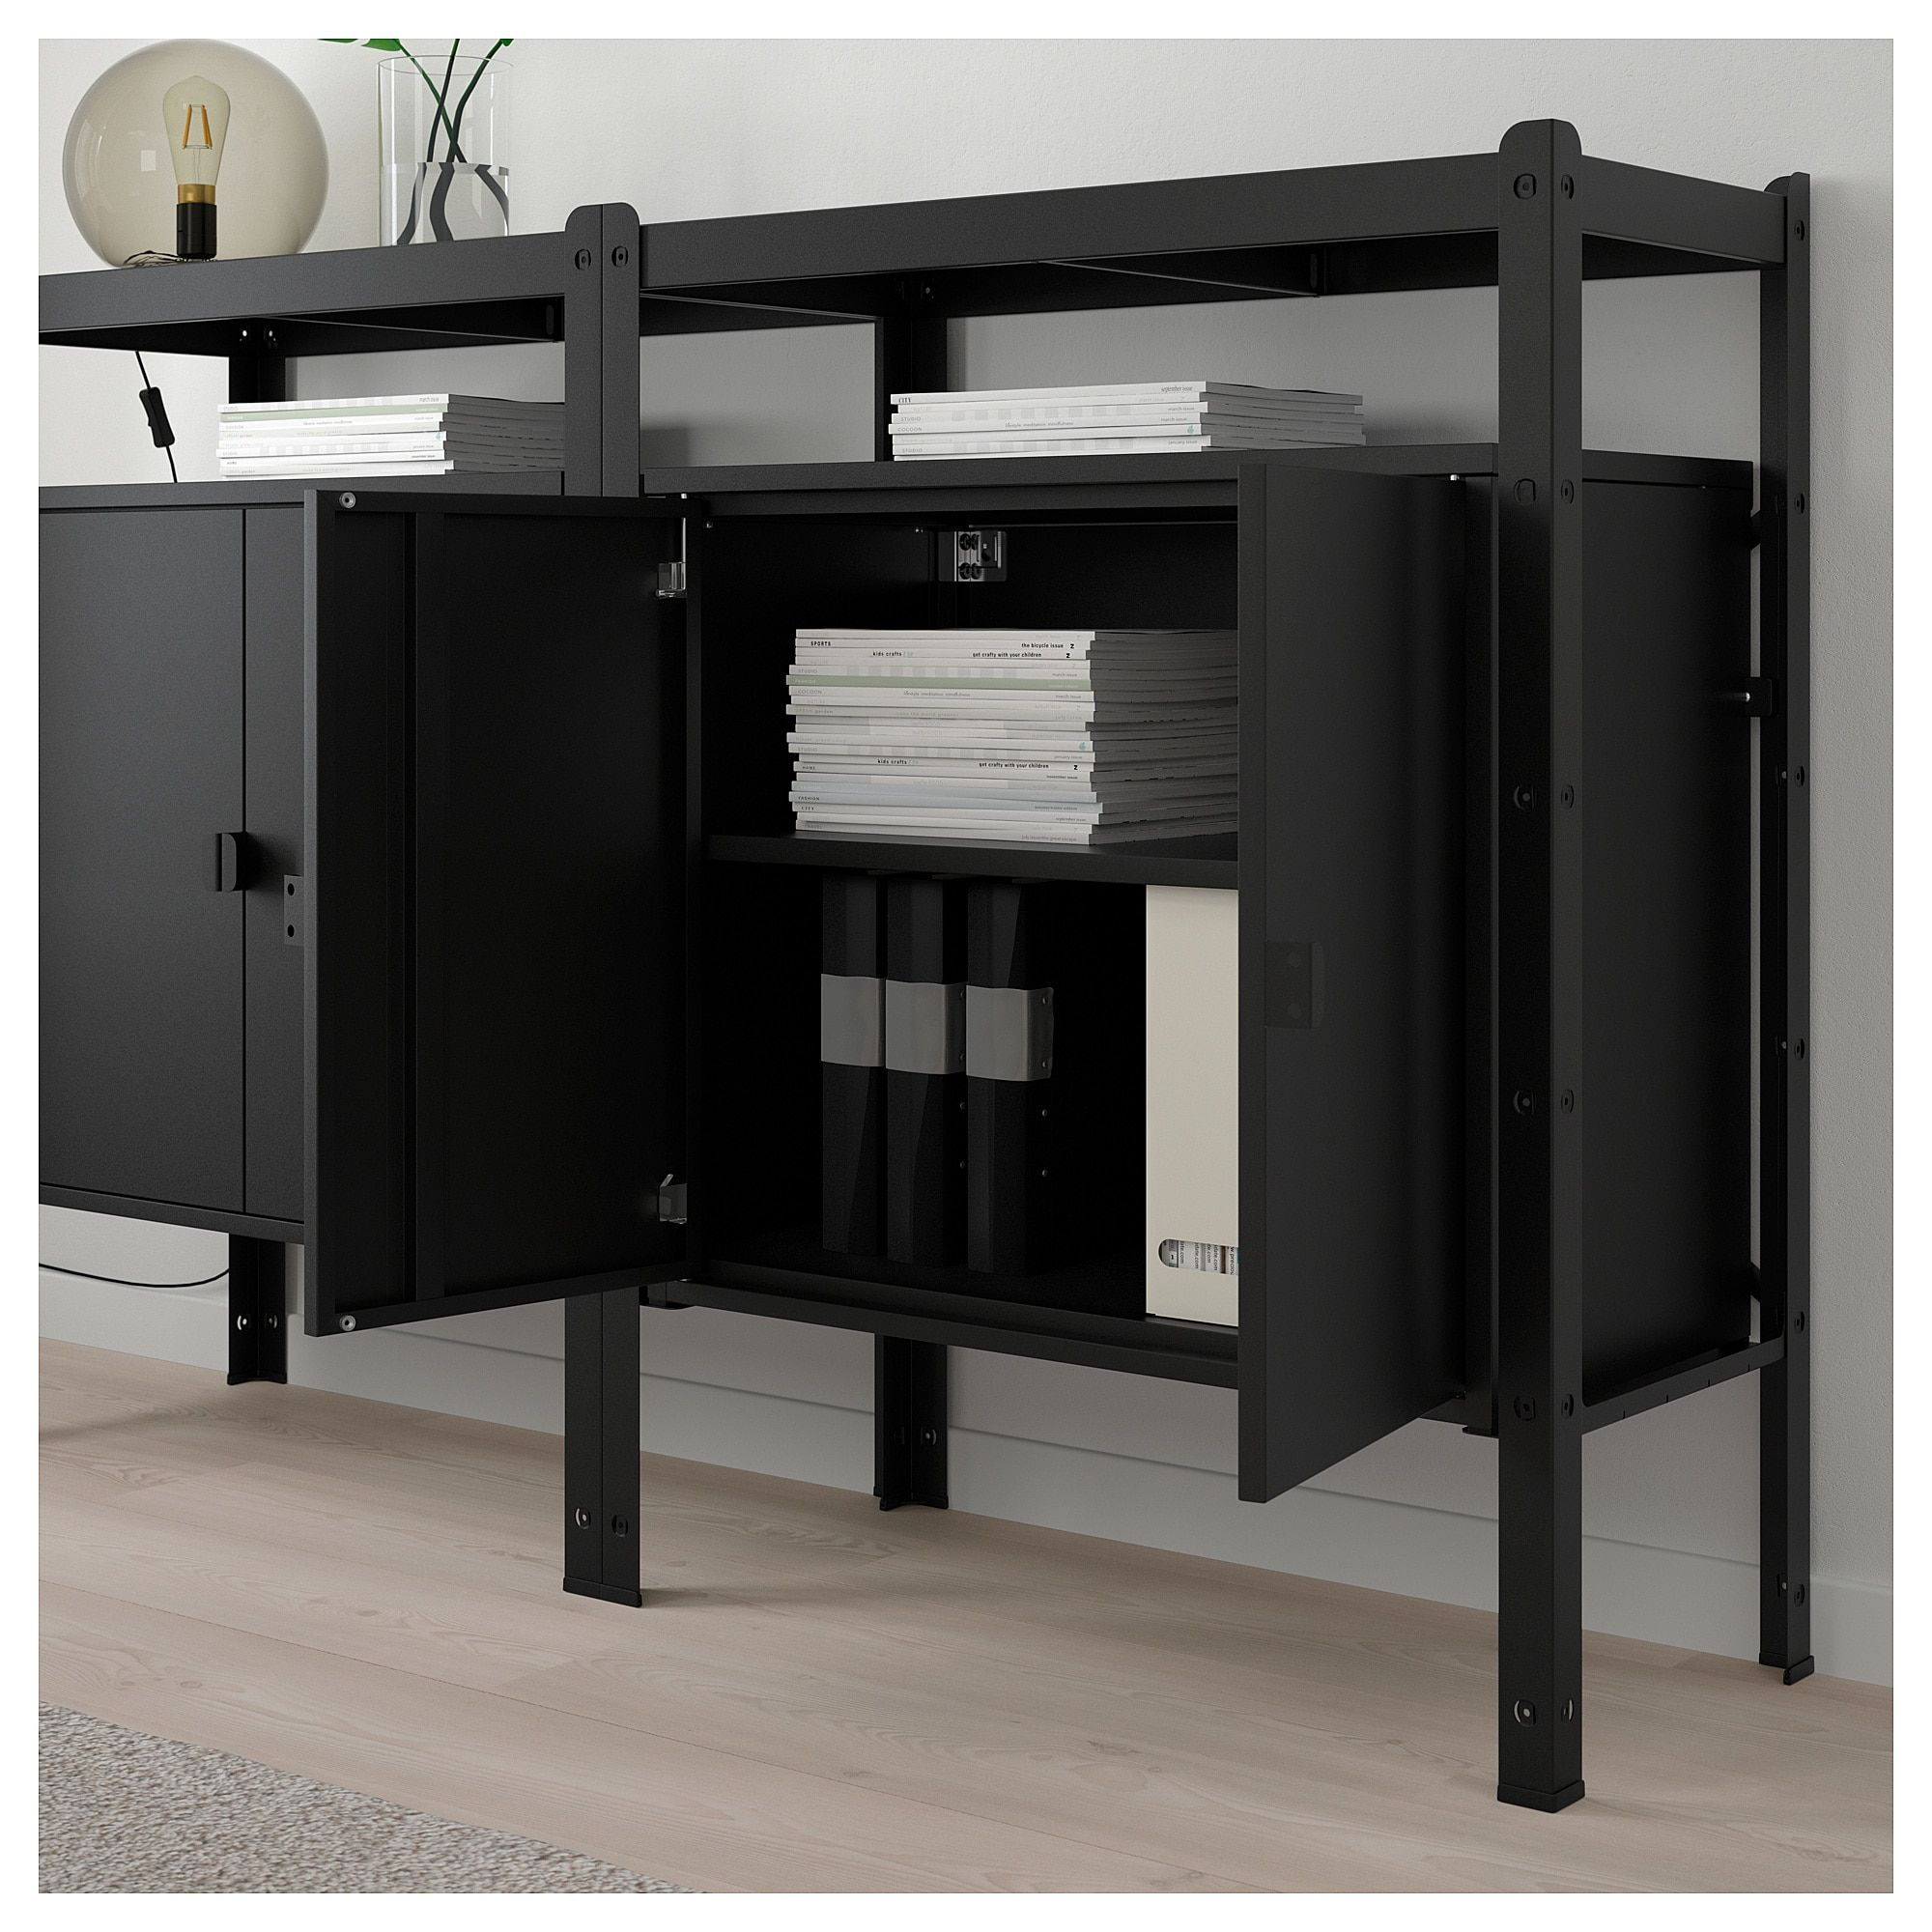 wholesale dealer 996ab b112d BROR Shelving unit with cabinets - black | Office Design in ...